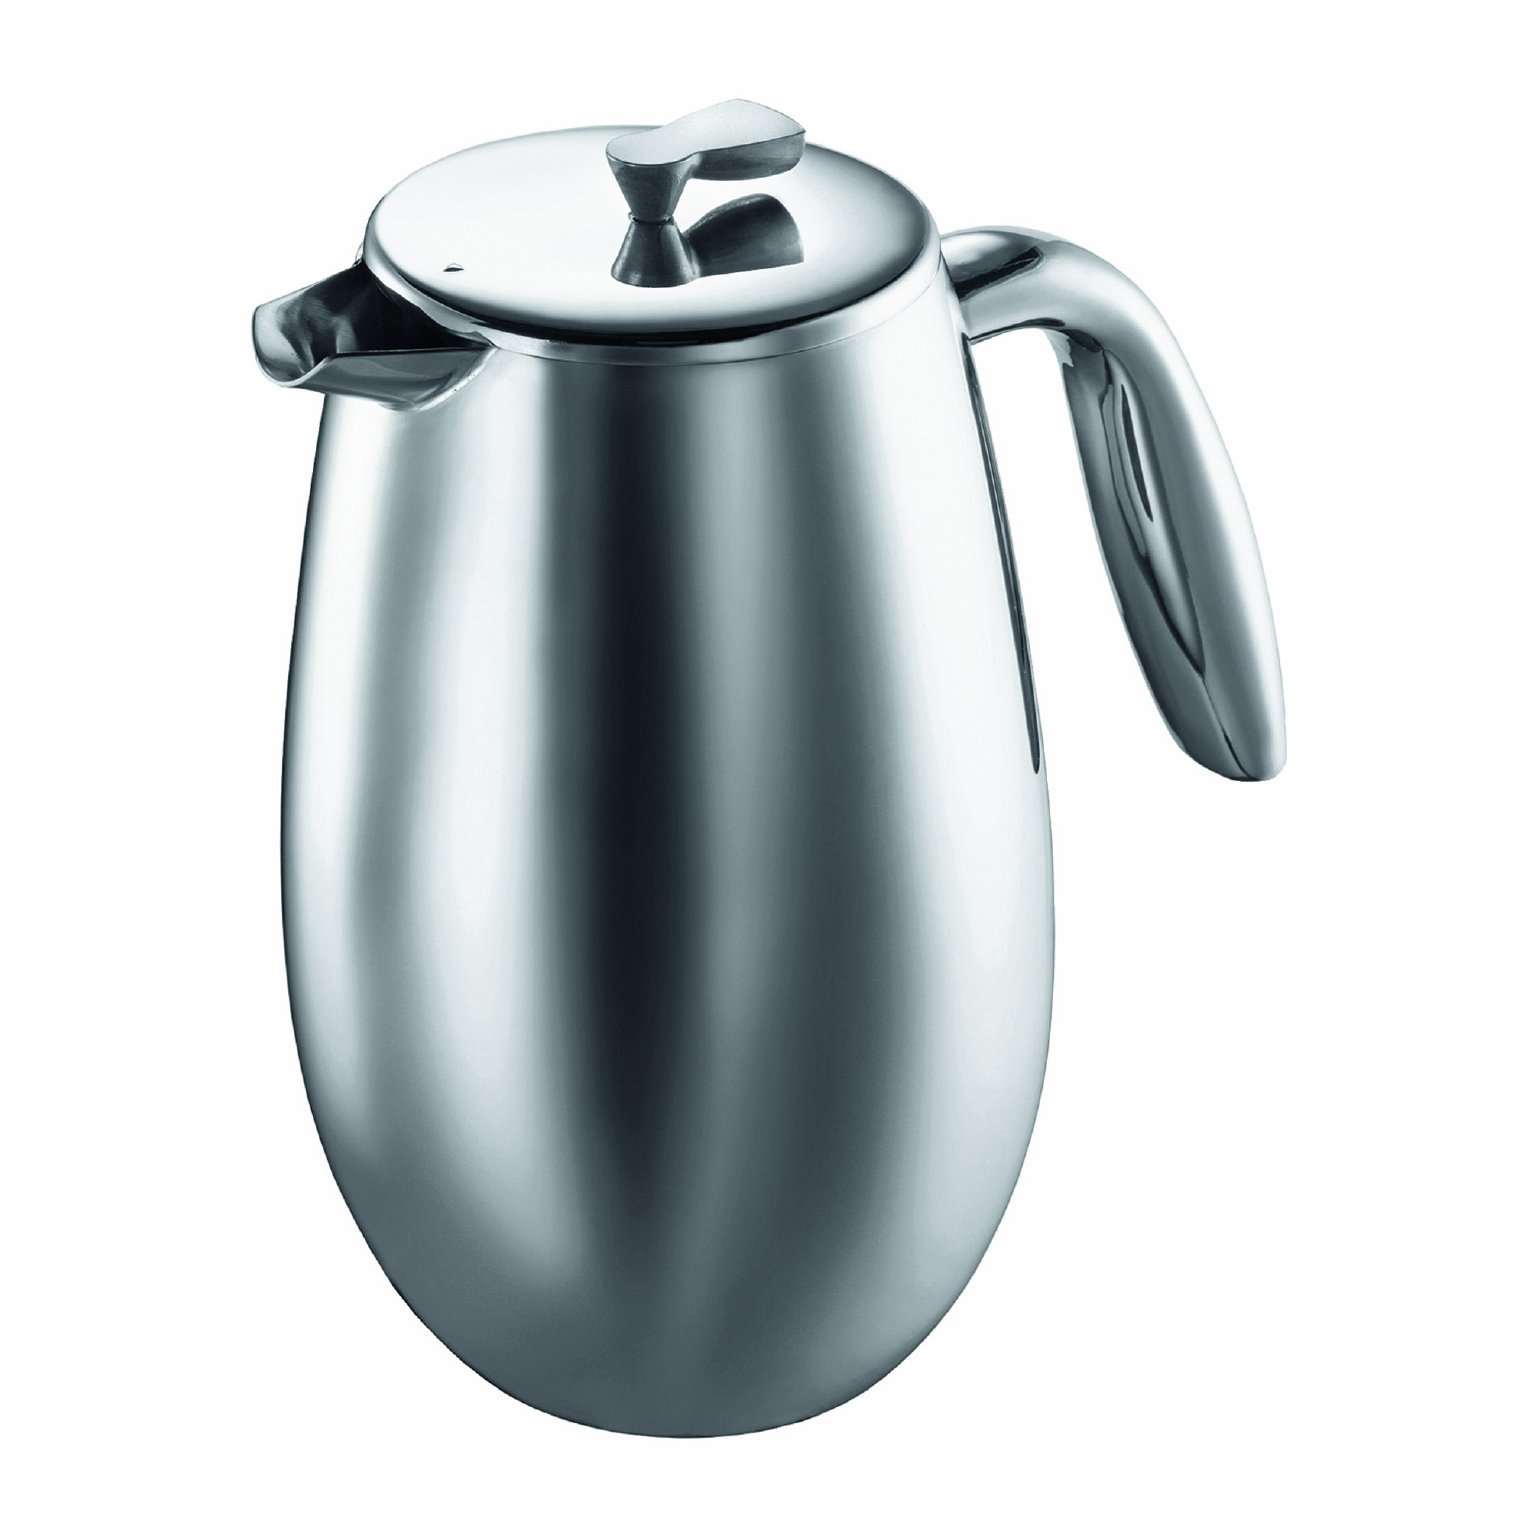 Bodum Columbia Thermal French Press Coffee Maker, Stainless Steel, 34 Ounce, 1 Liter (8 cup) by Bodum